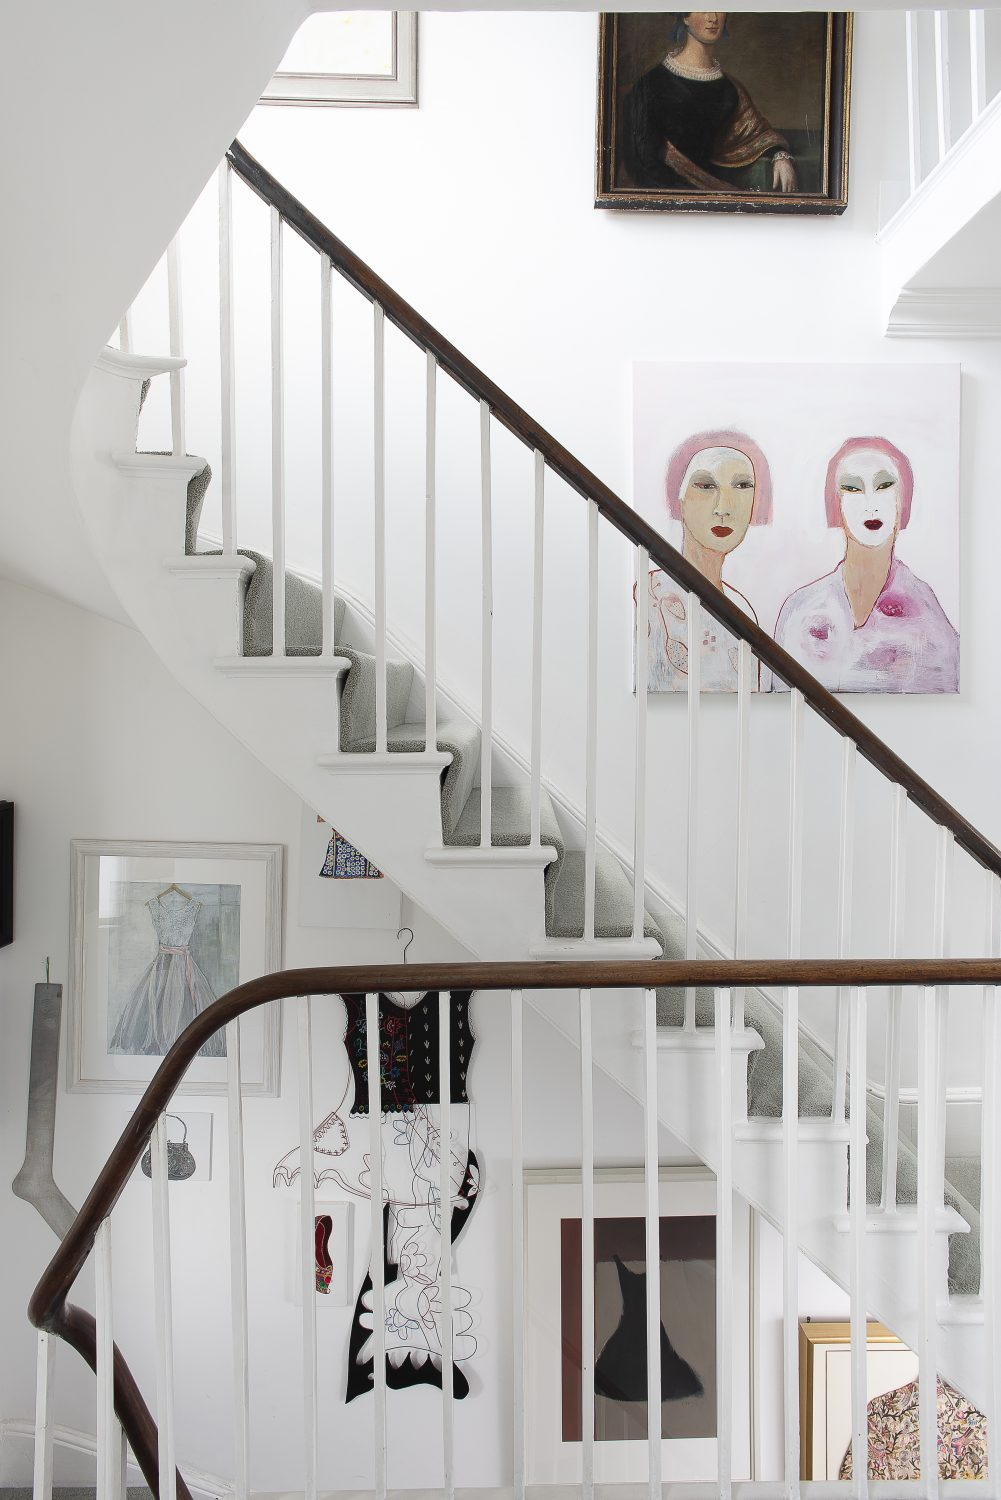 Artwork features prominently on the walls of the staircase